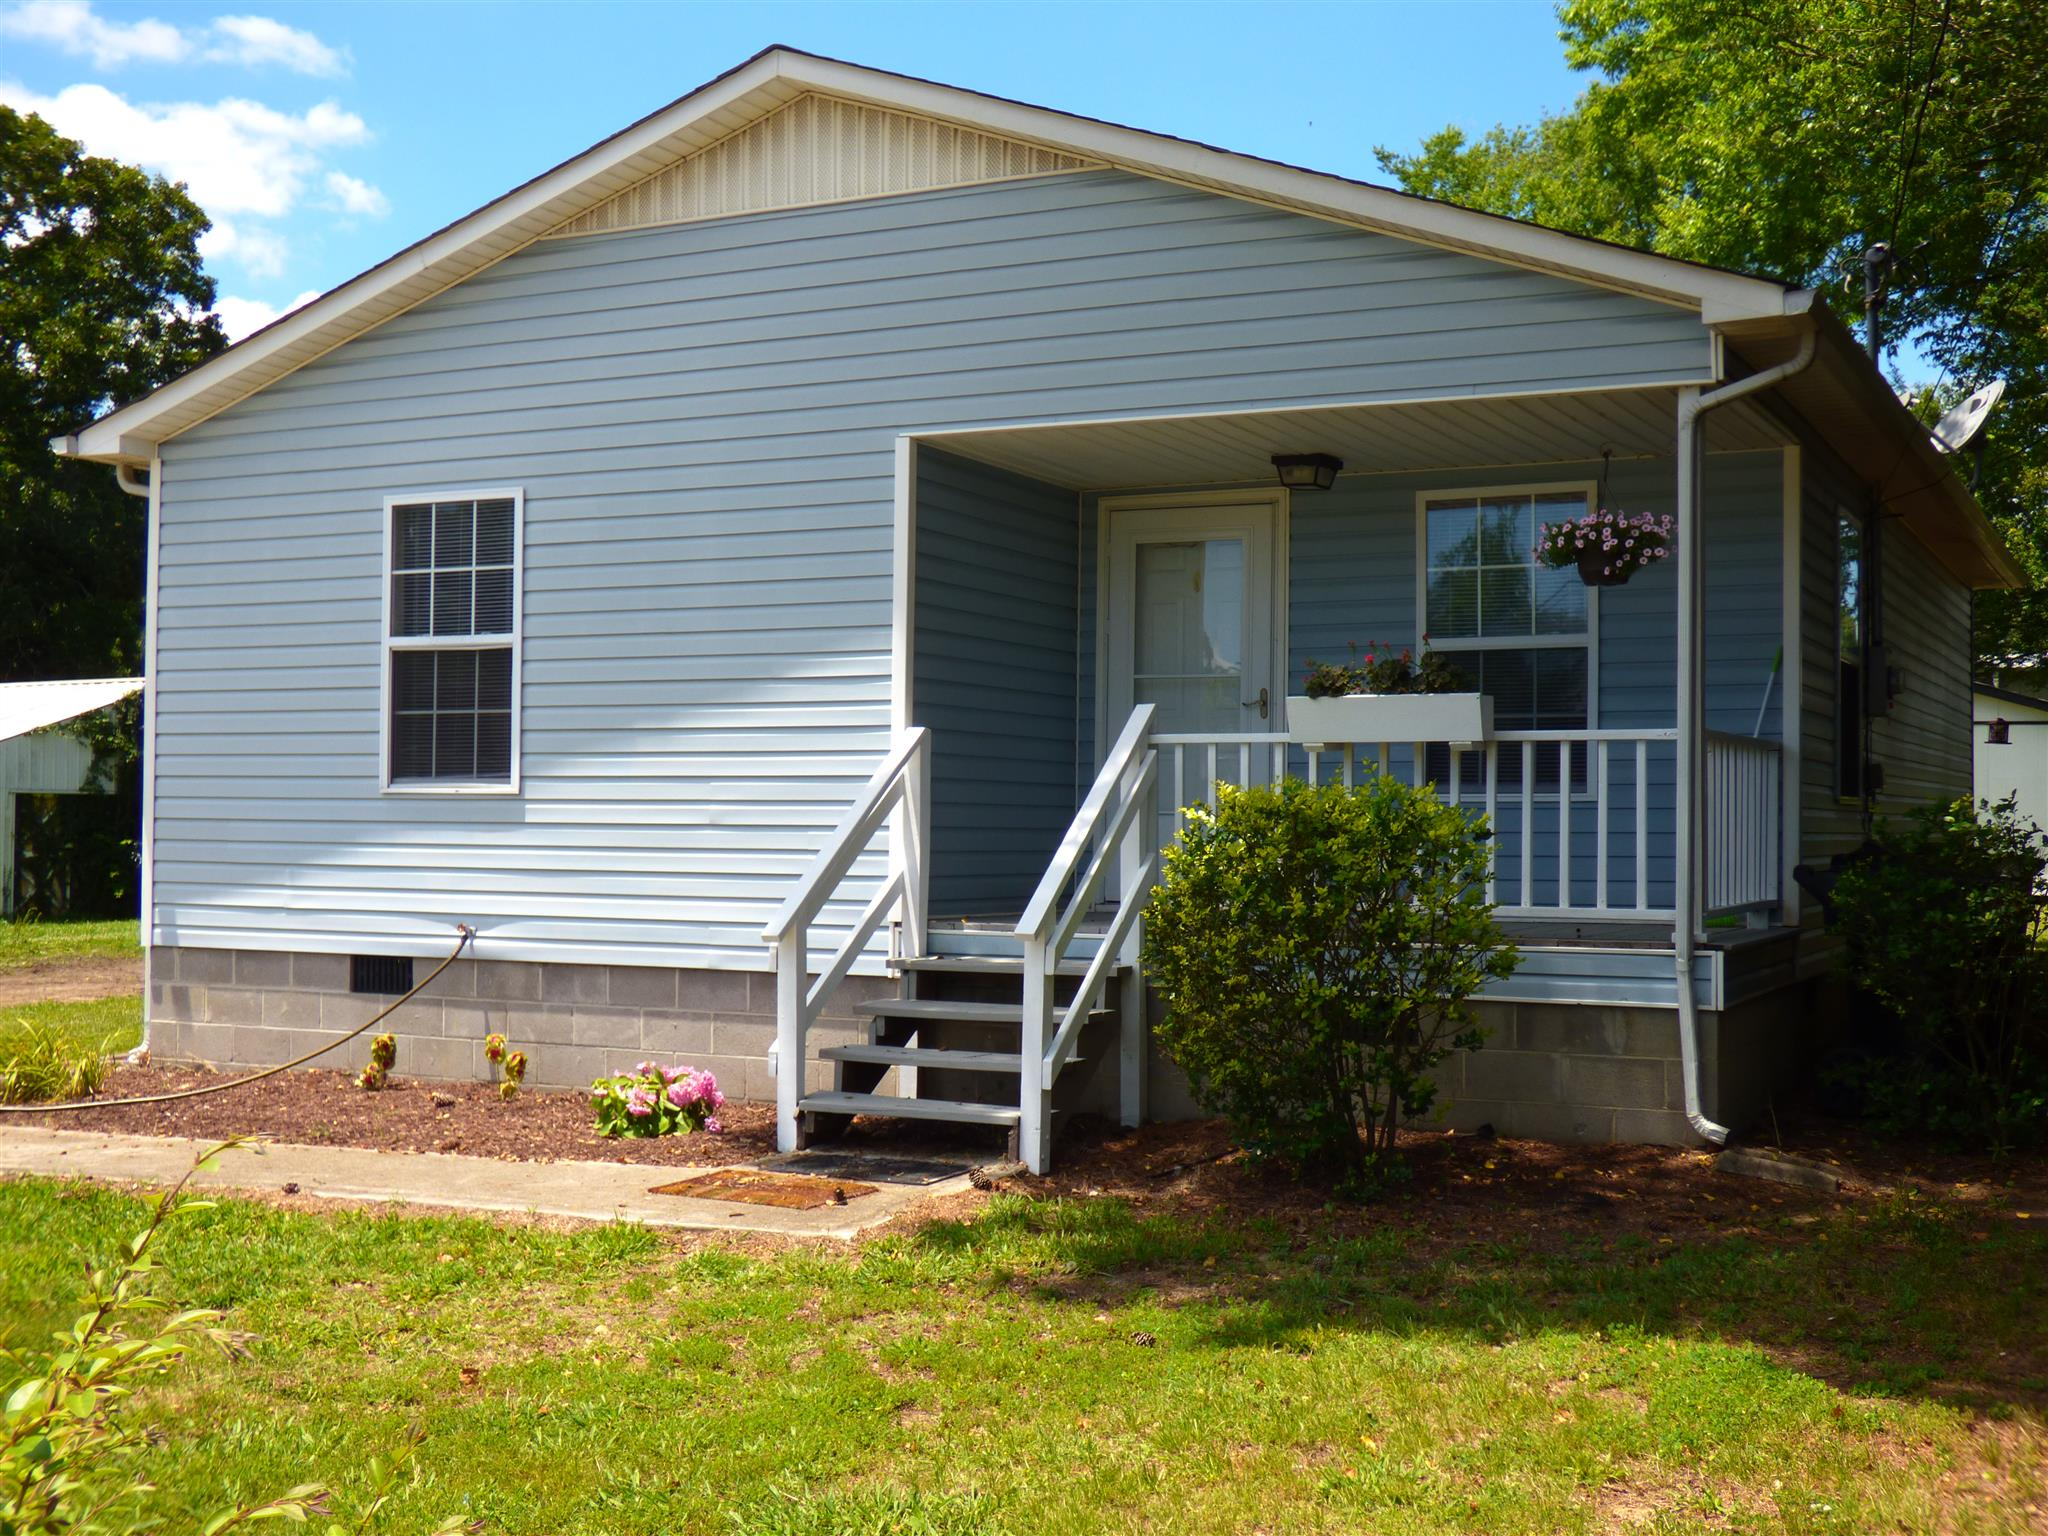 Photo of 206 Weaver St  Tullahoma  TN